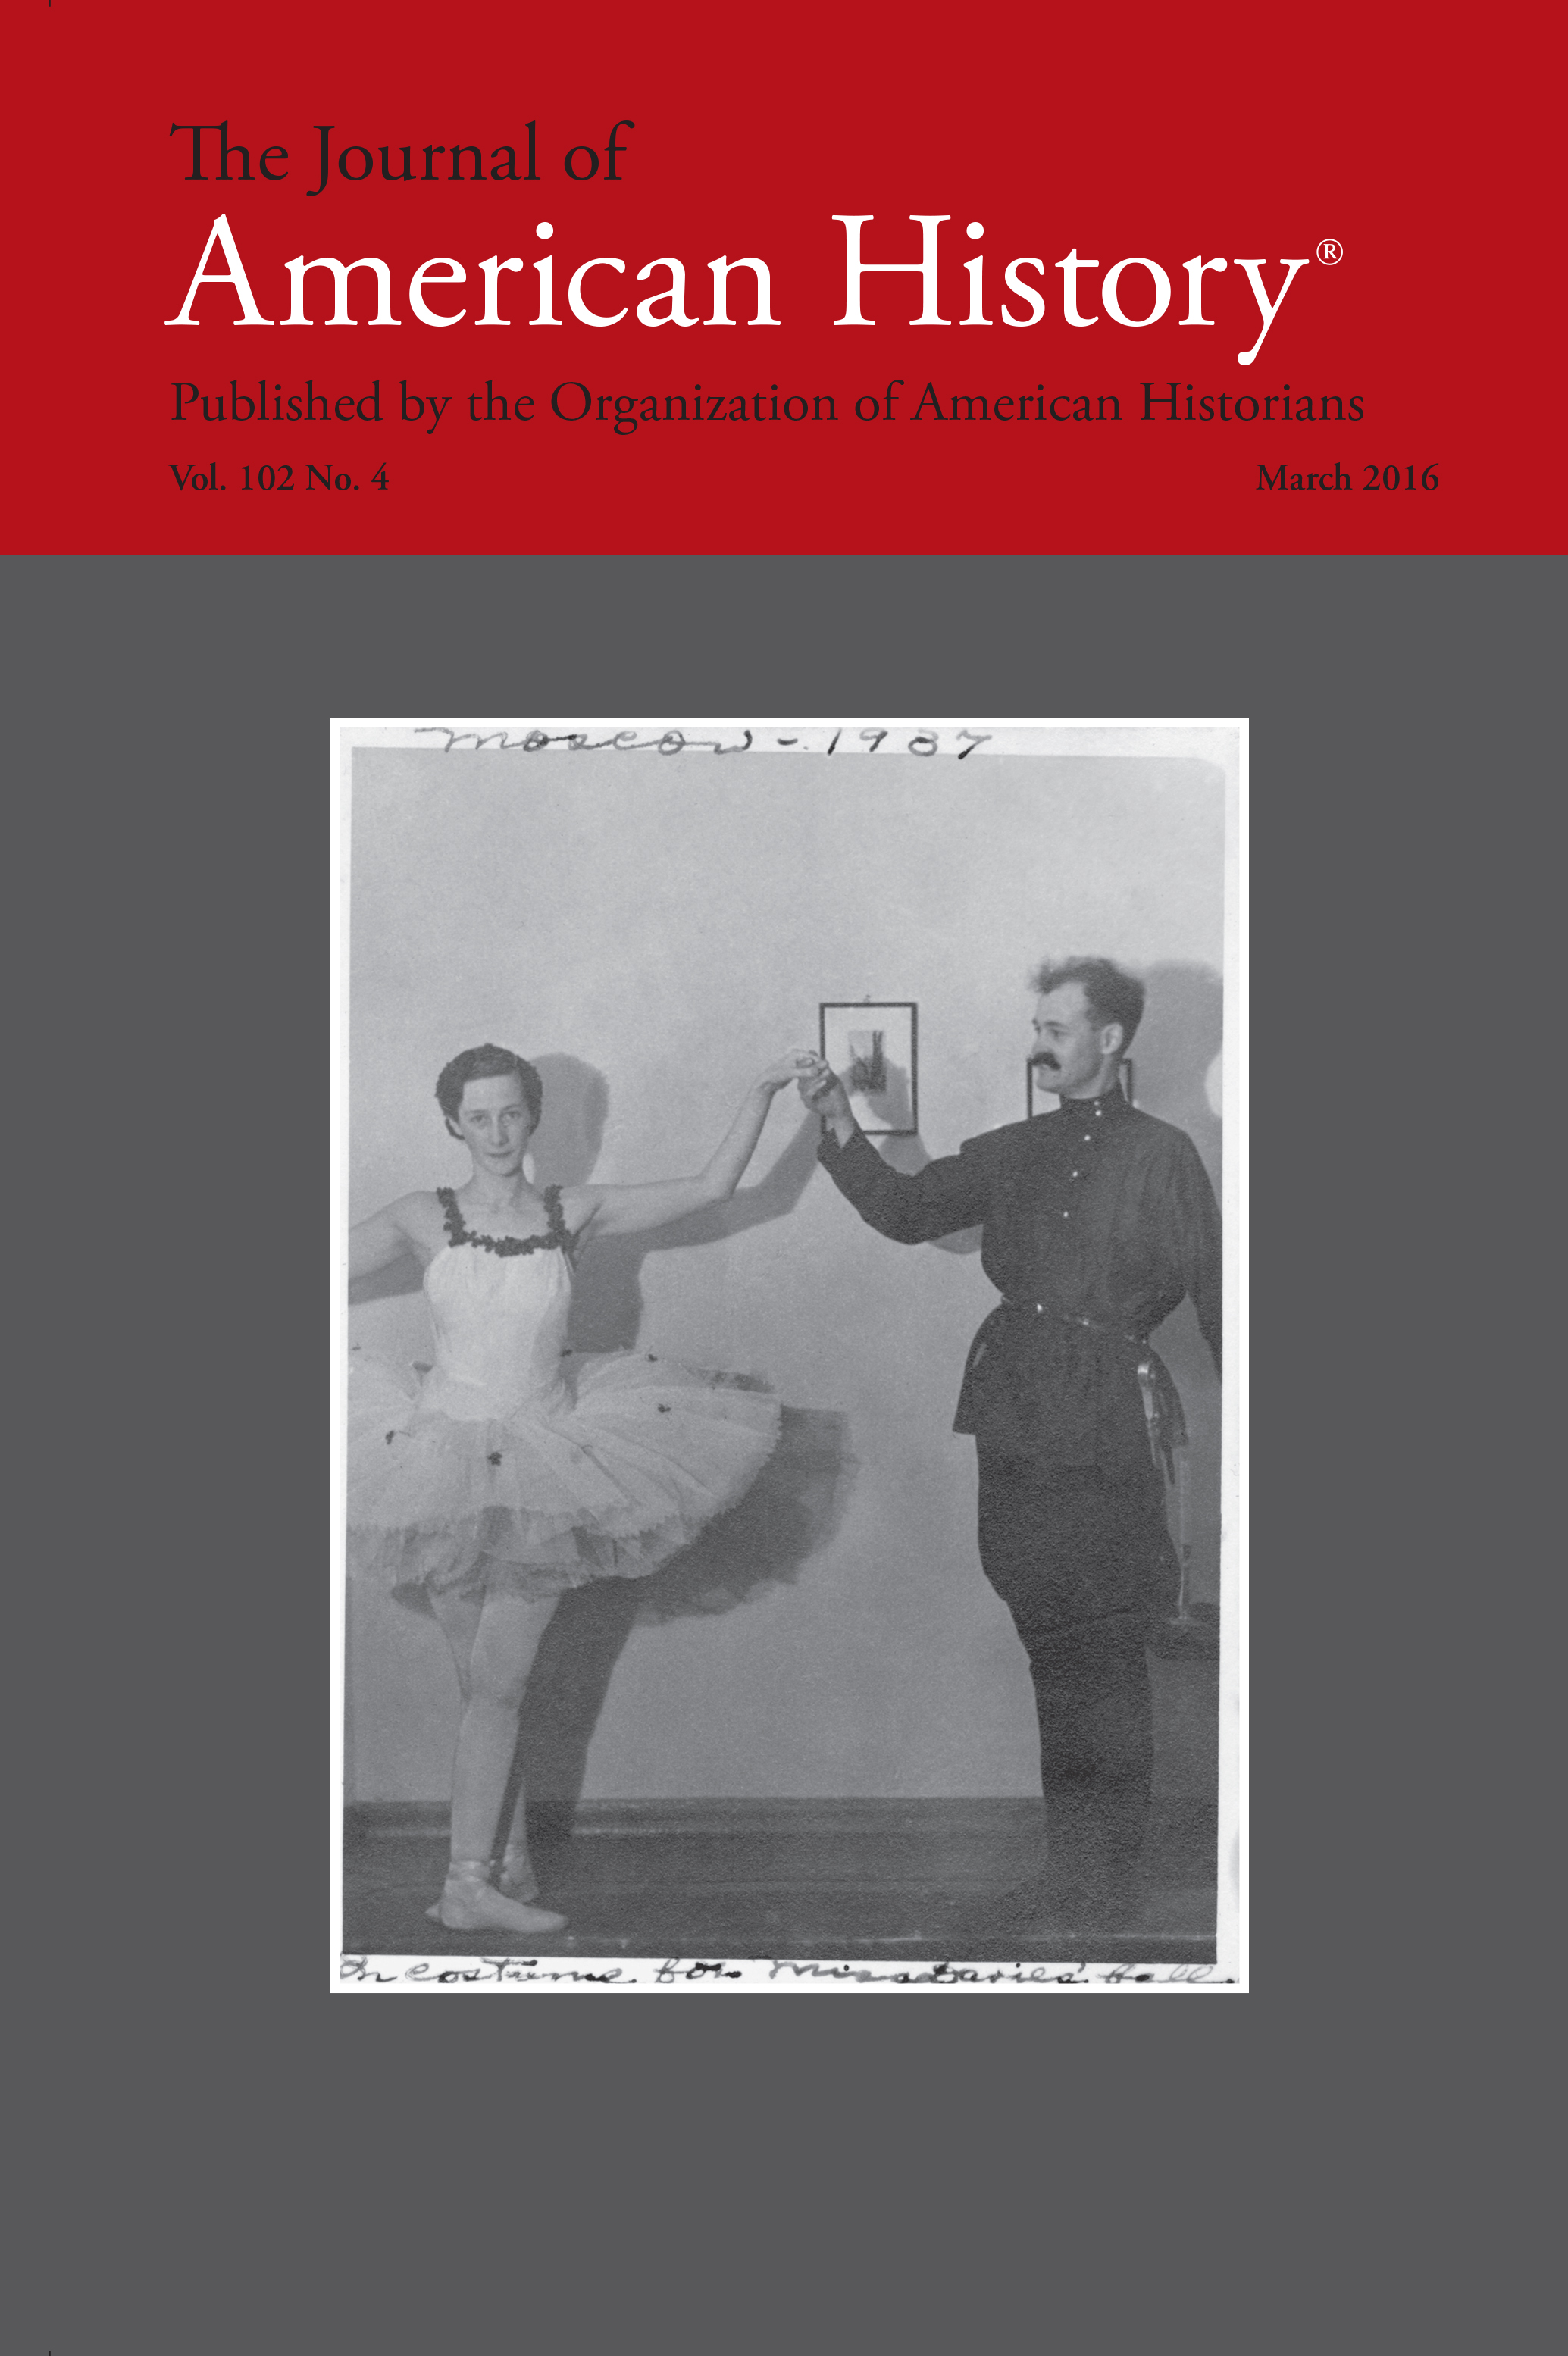 Cover of the March 2006 Journal of American History